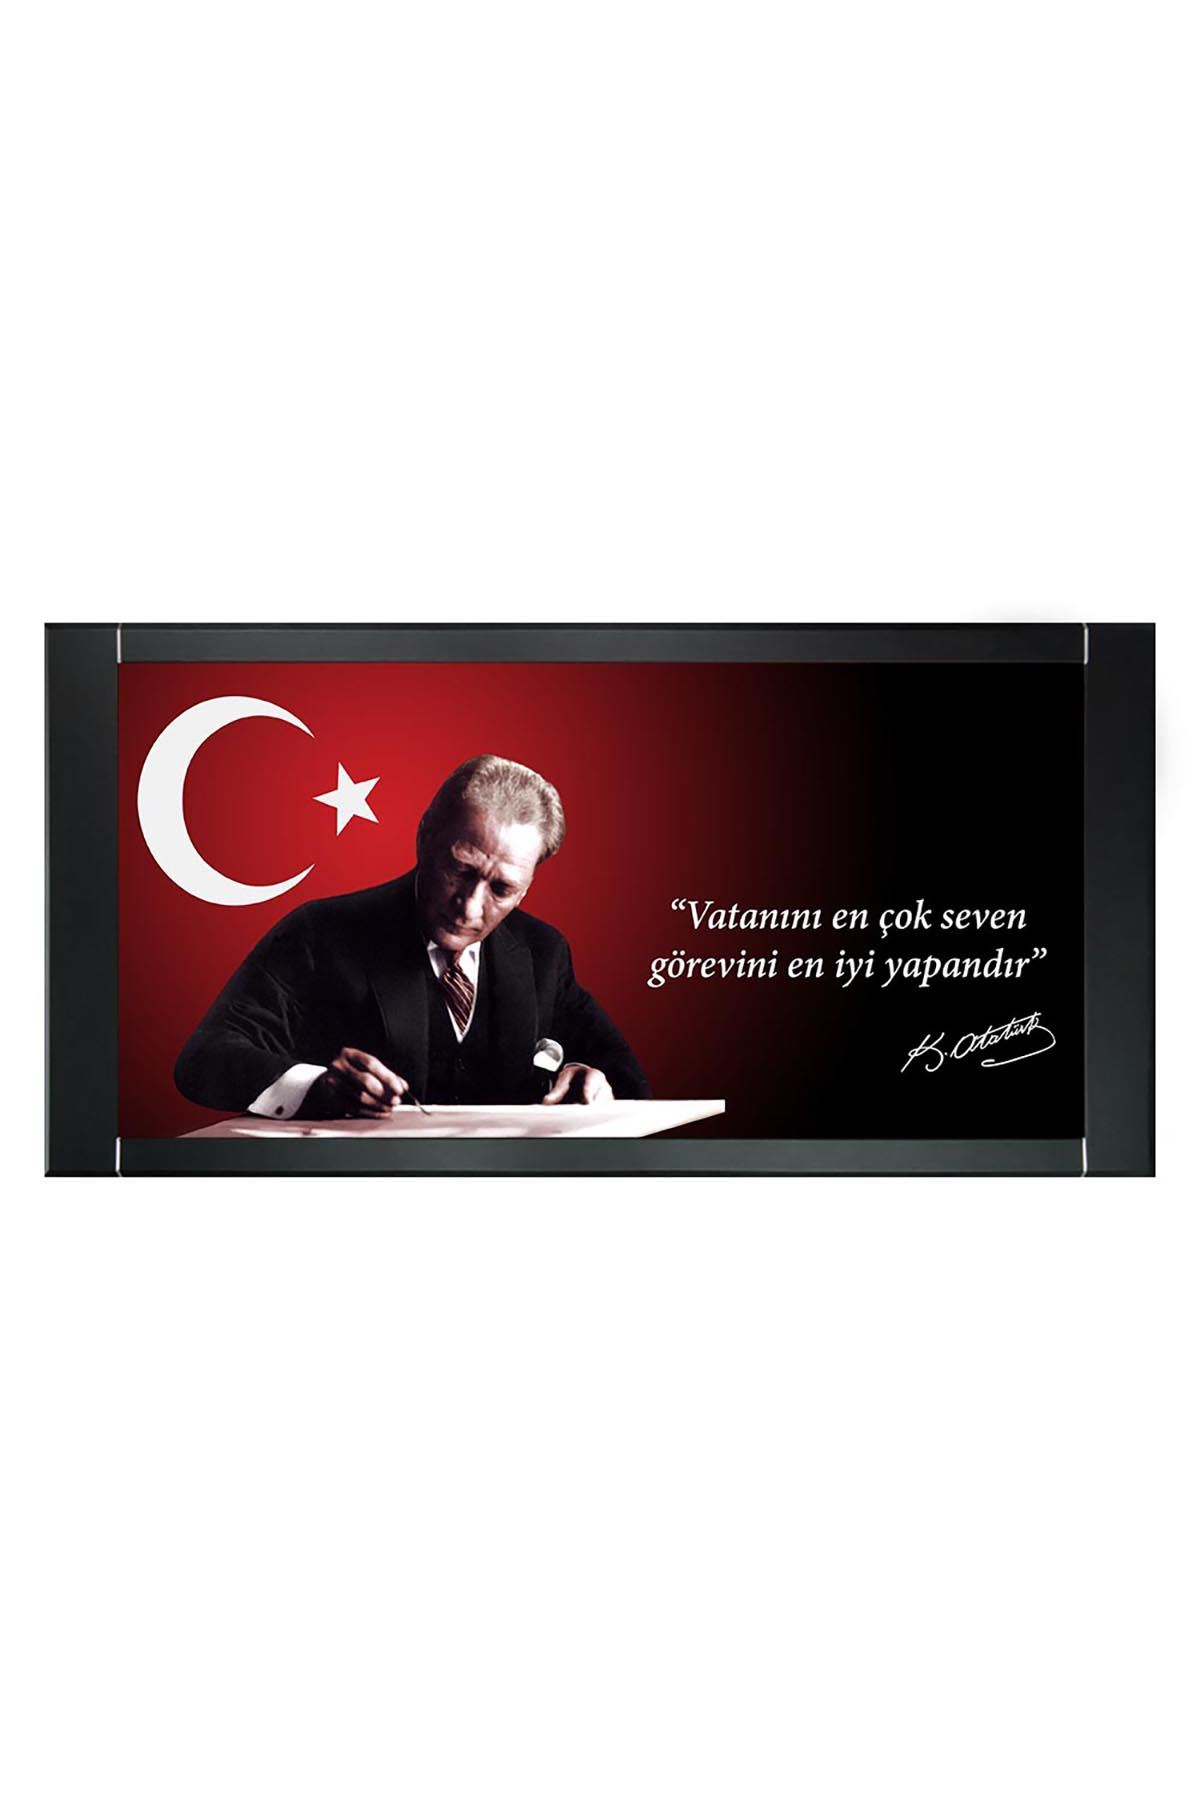 M. Kemal Atatürk Printed Manager Board | Printed Manager Board | Leather Framed Board | High Quality Manager Board